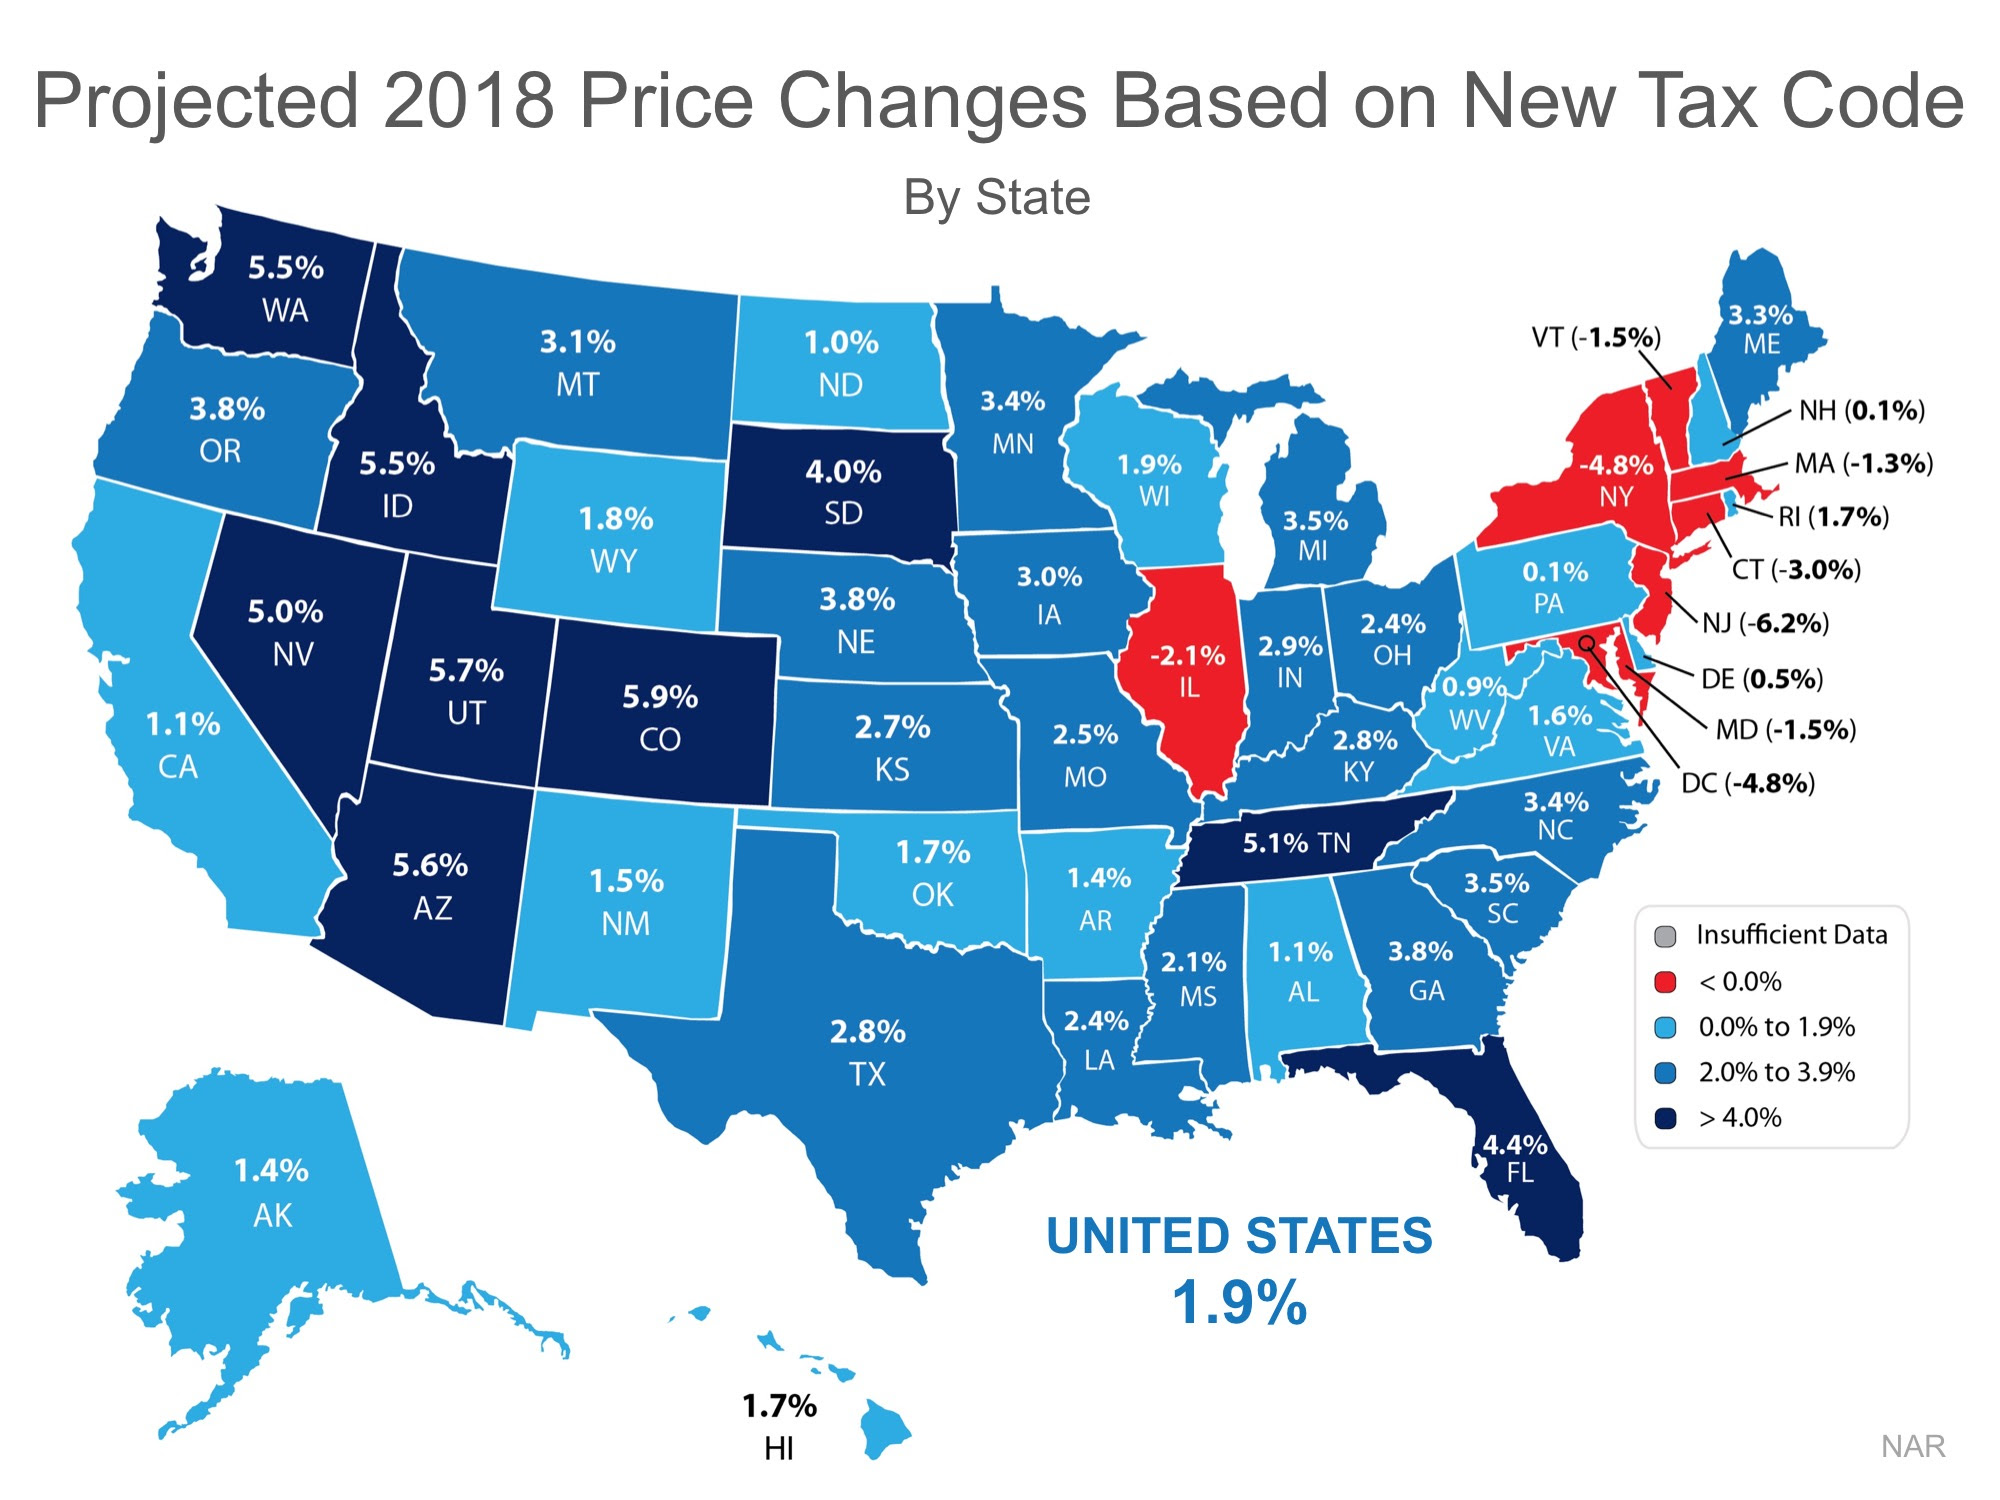 What Impact Will the New Tax Code Have on Home Values? | MyKCM